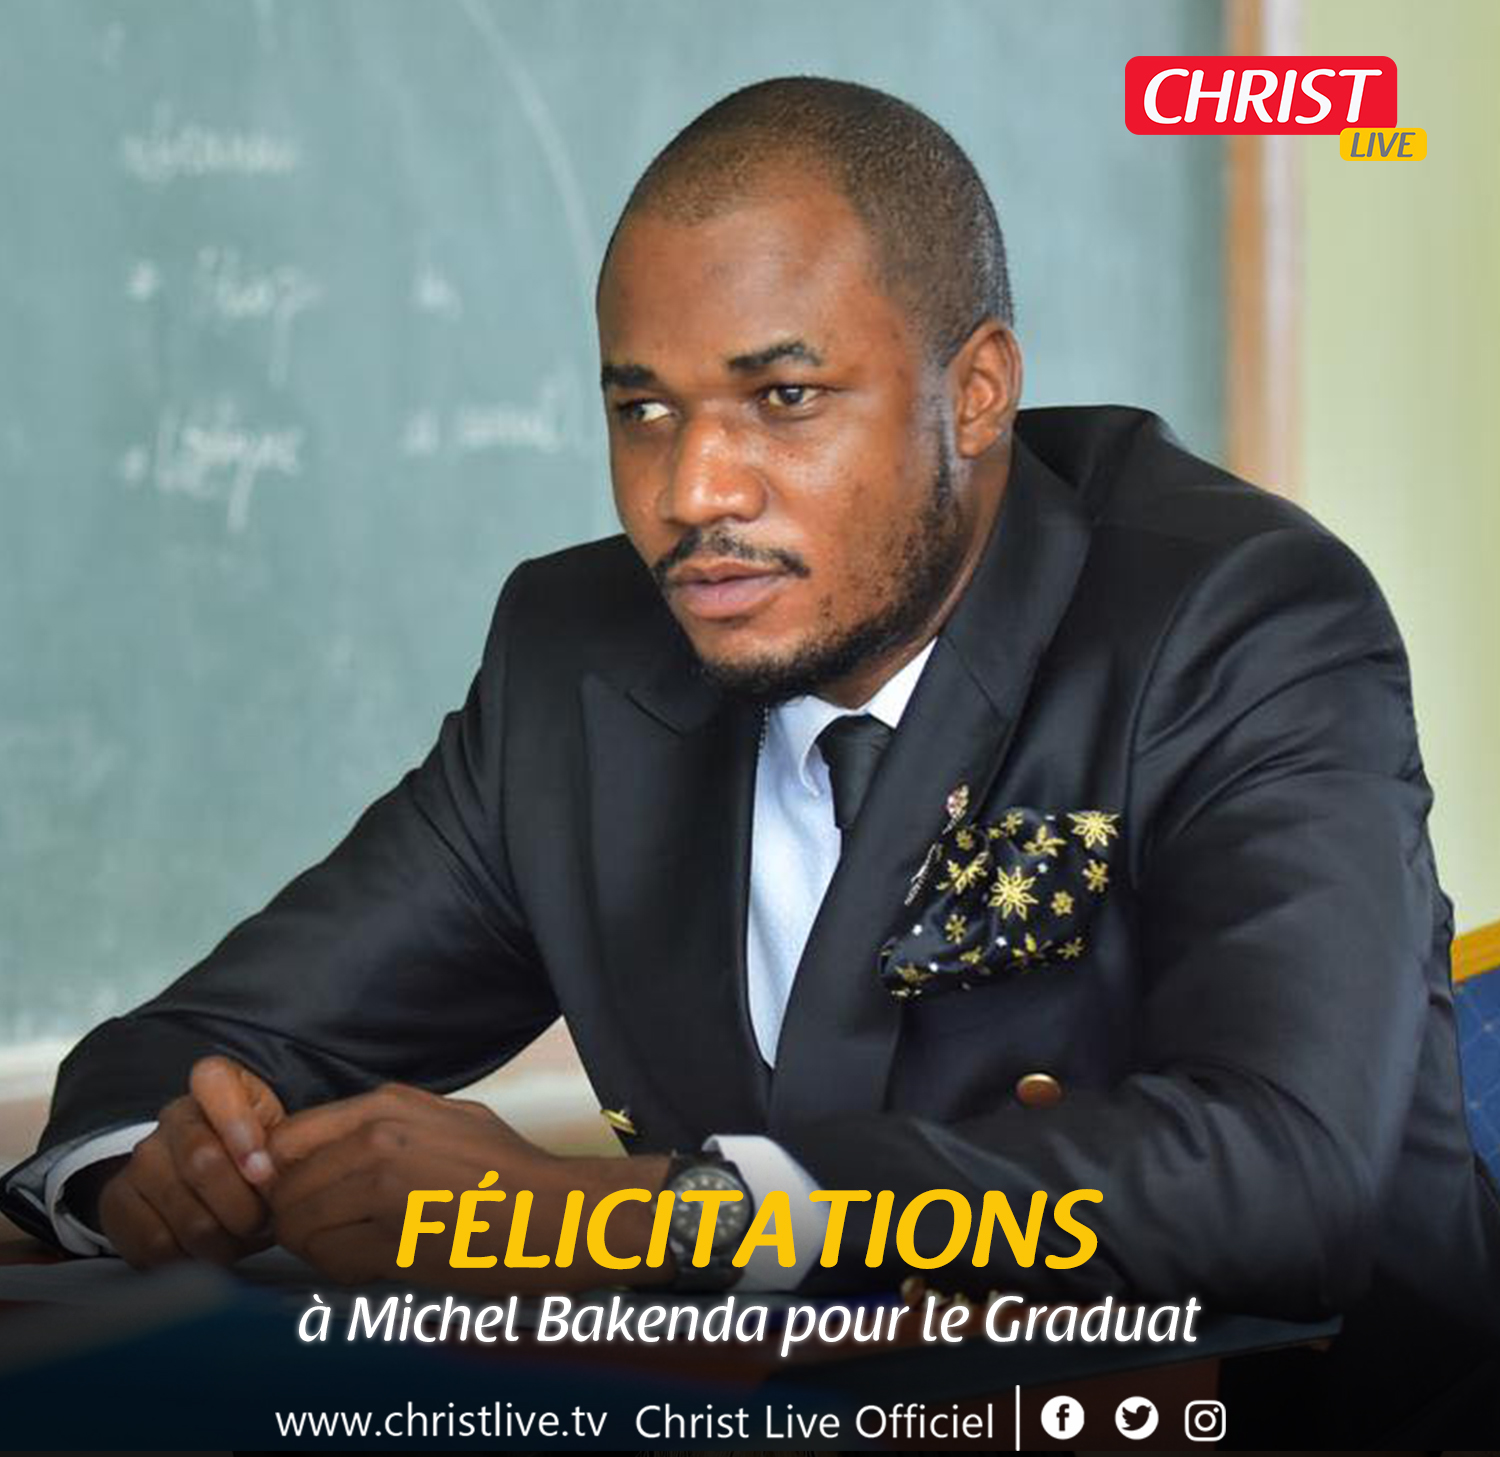 Michel Bakenda décroche le Graduat avec mention grande distinction.